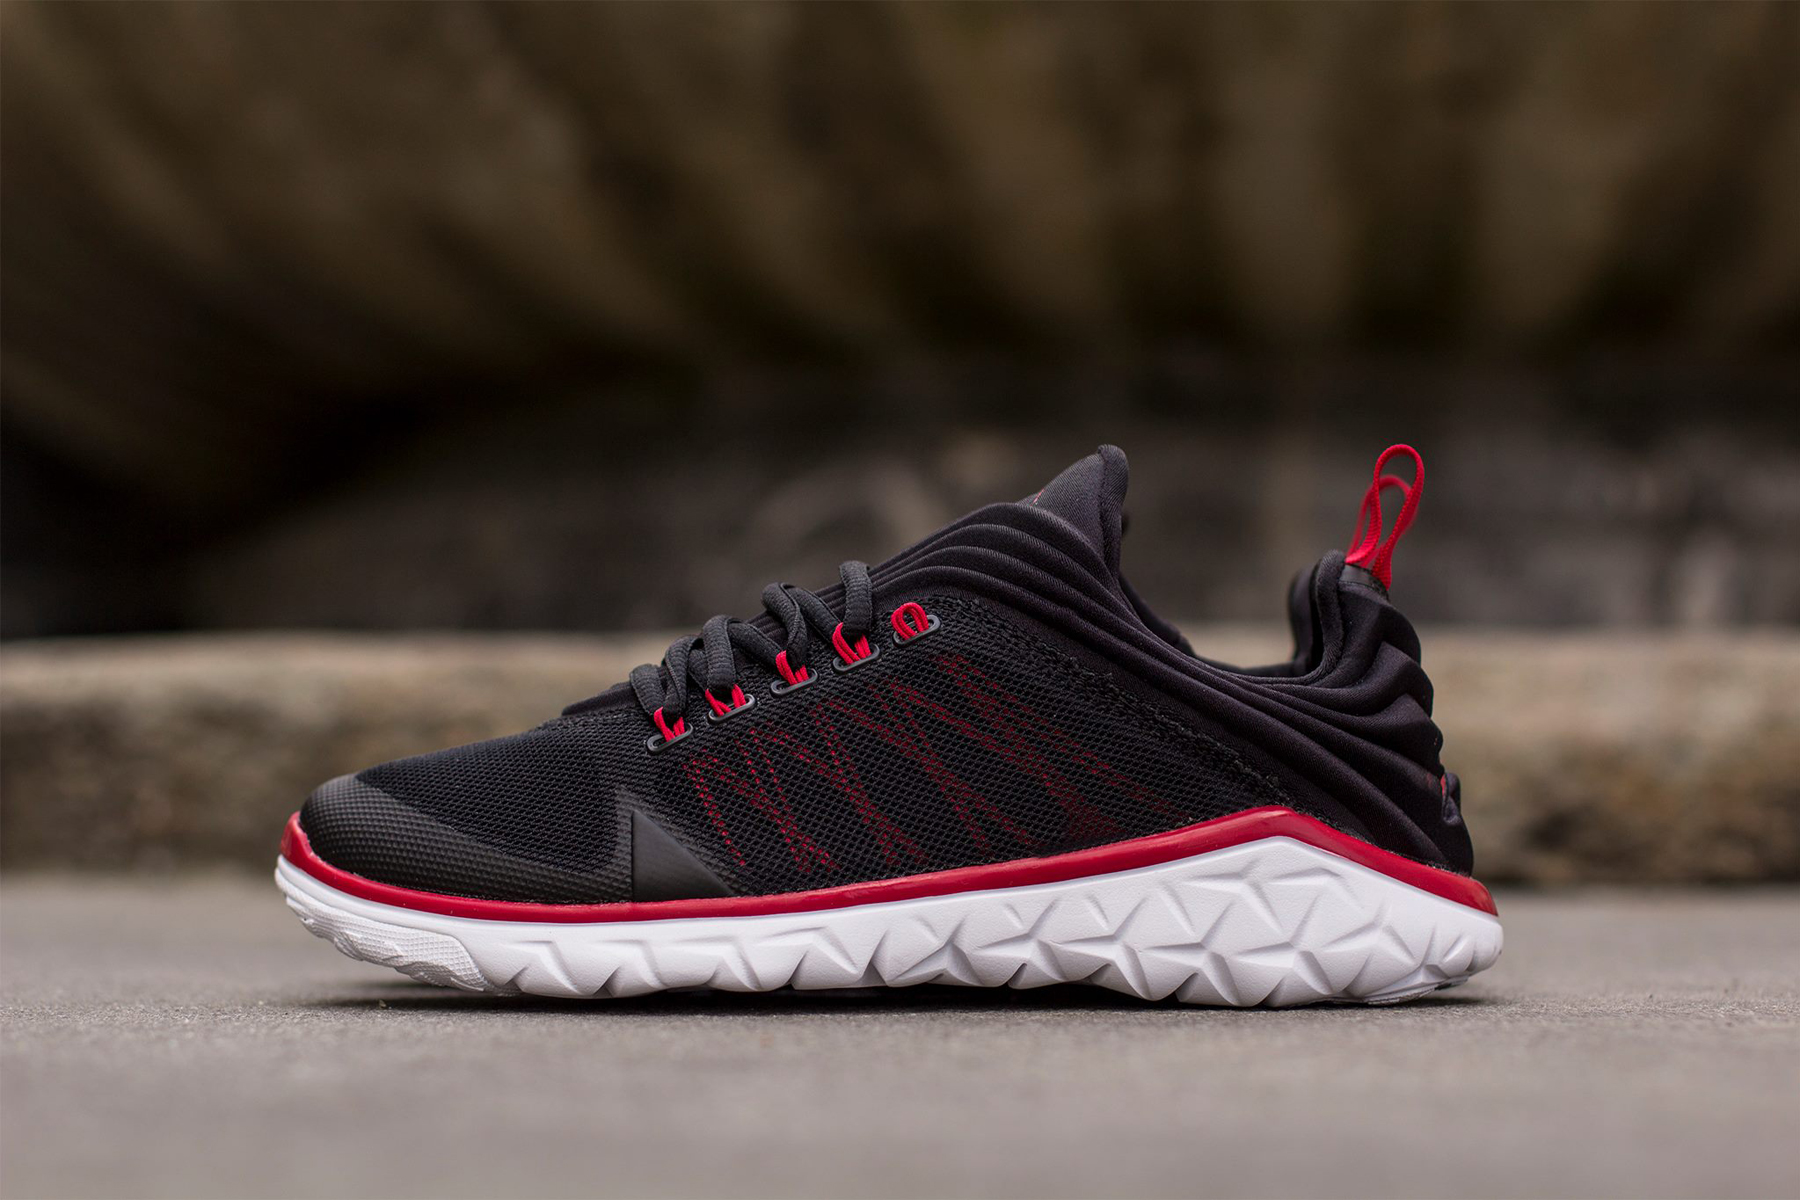 http://hypebeast.com/2014/8/air-jordan-flight-flex-trainer-black-gym-red-white